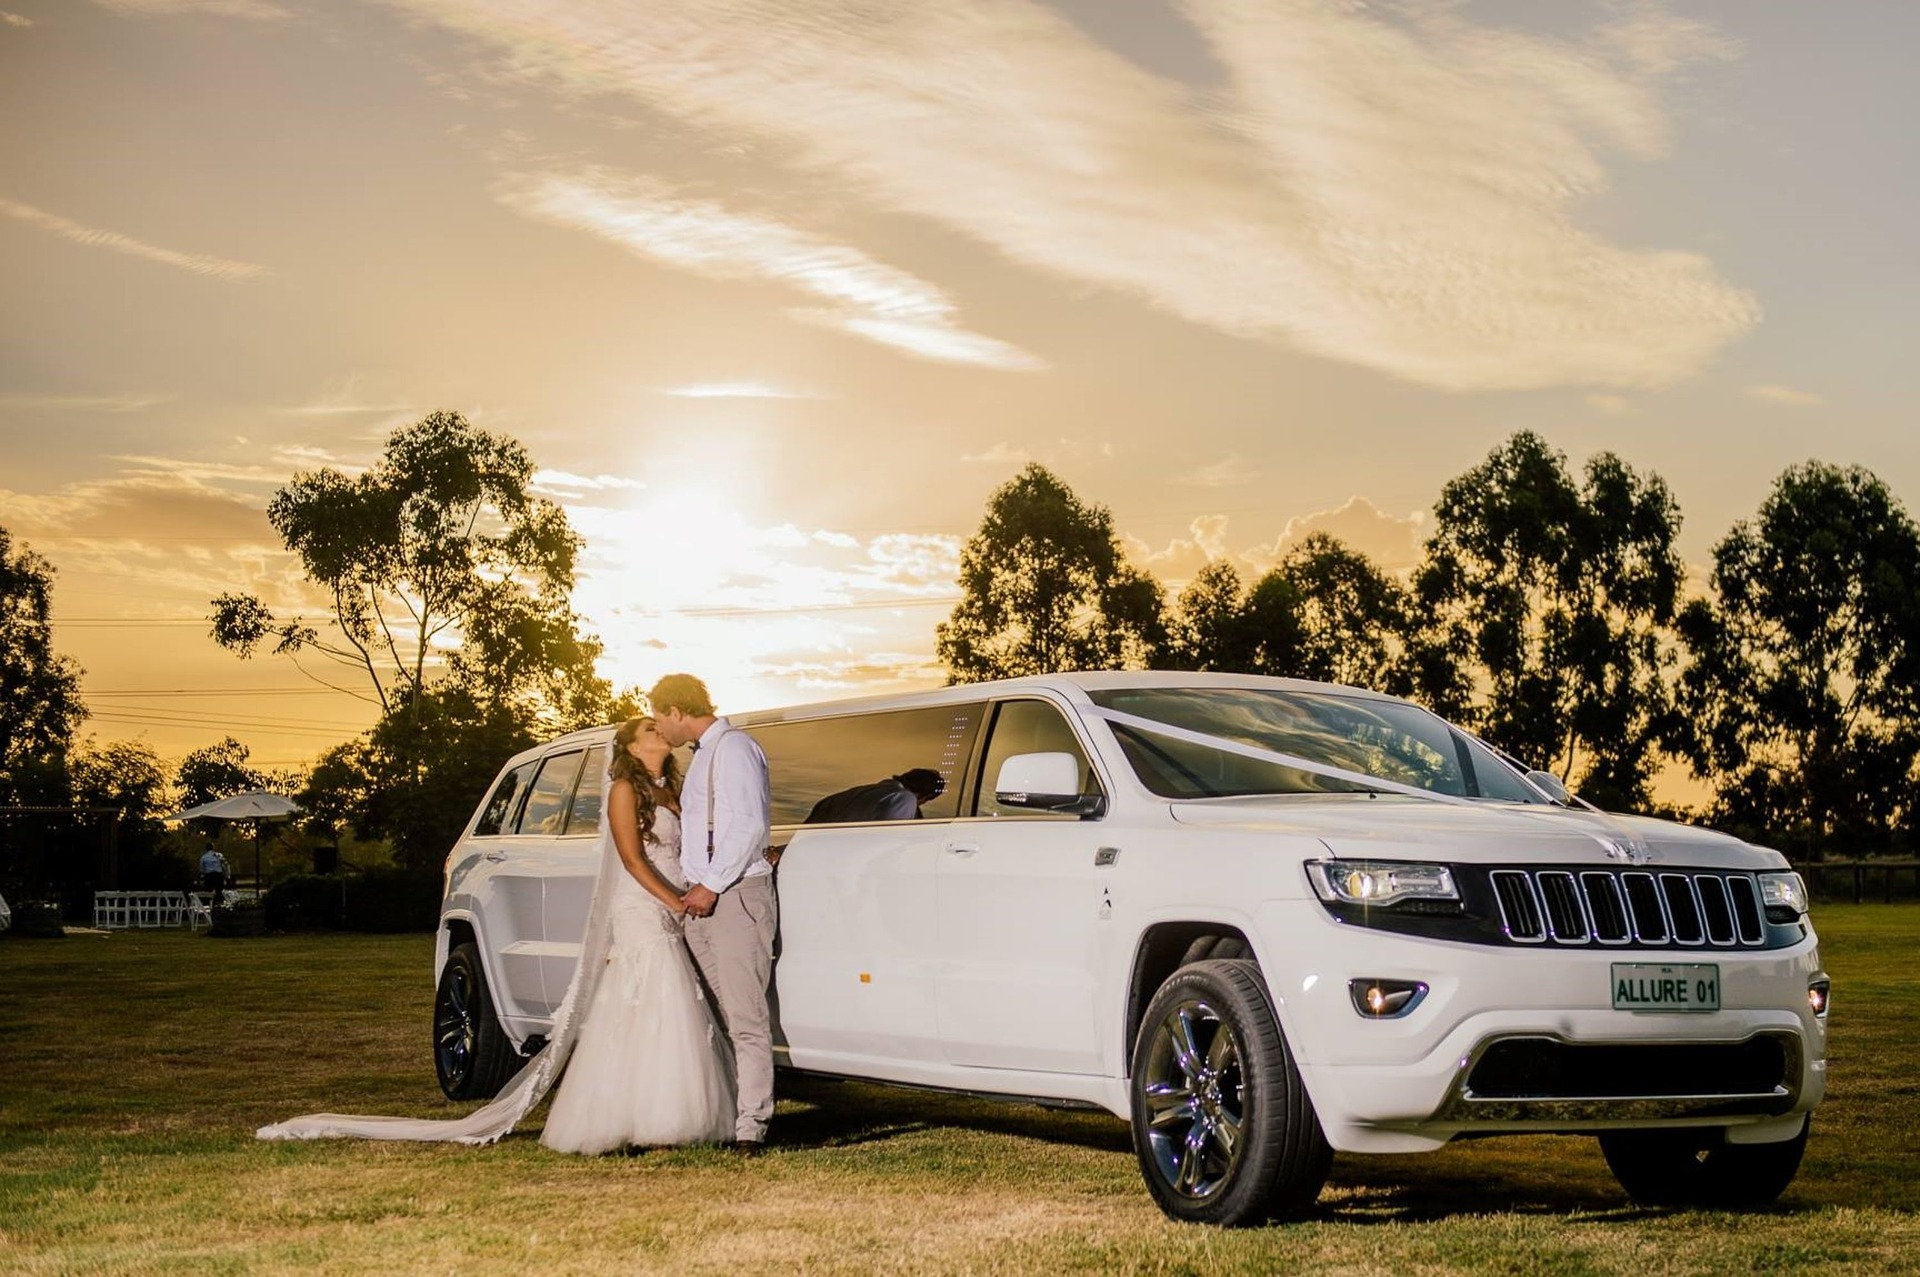 bride and groom, white wedding limo